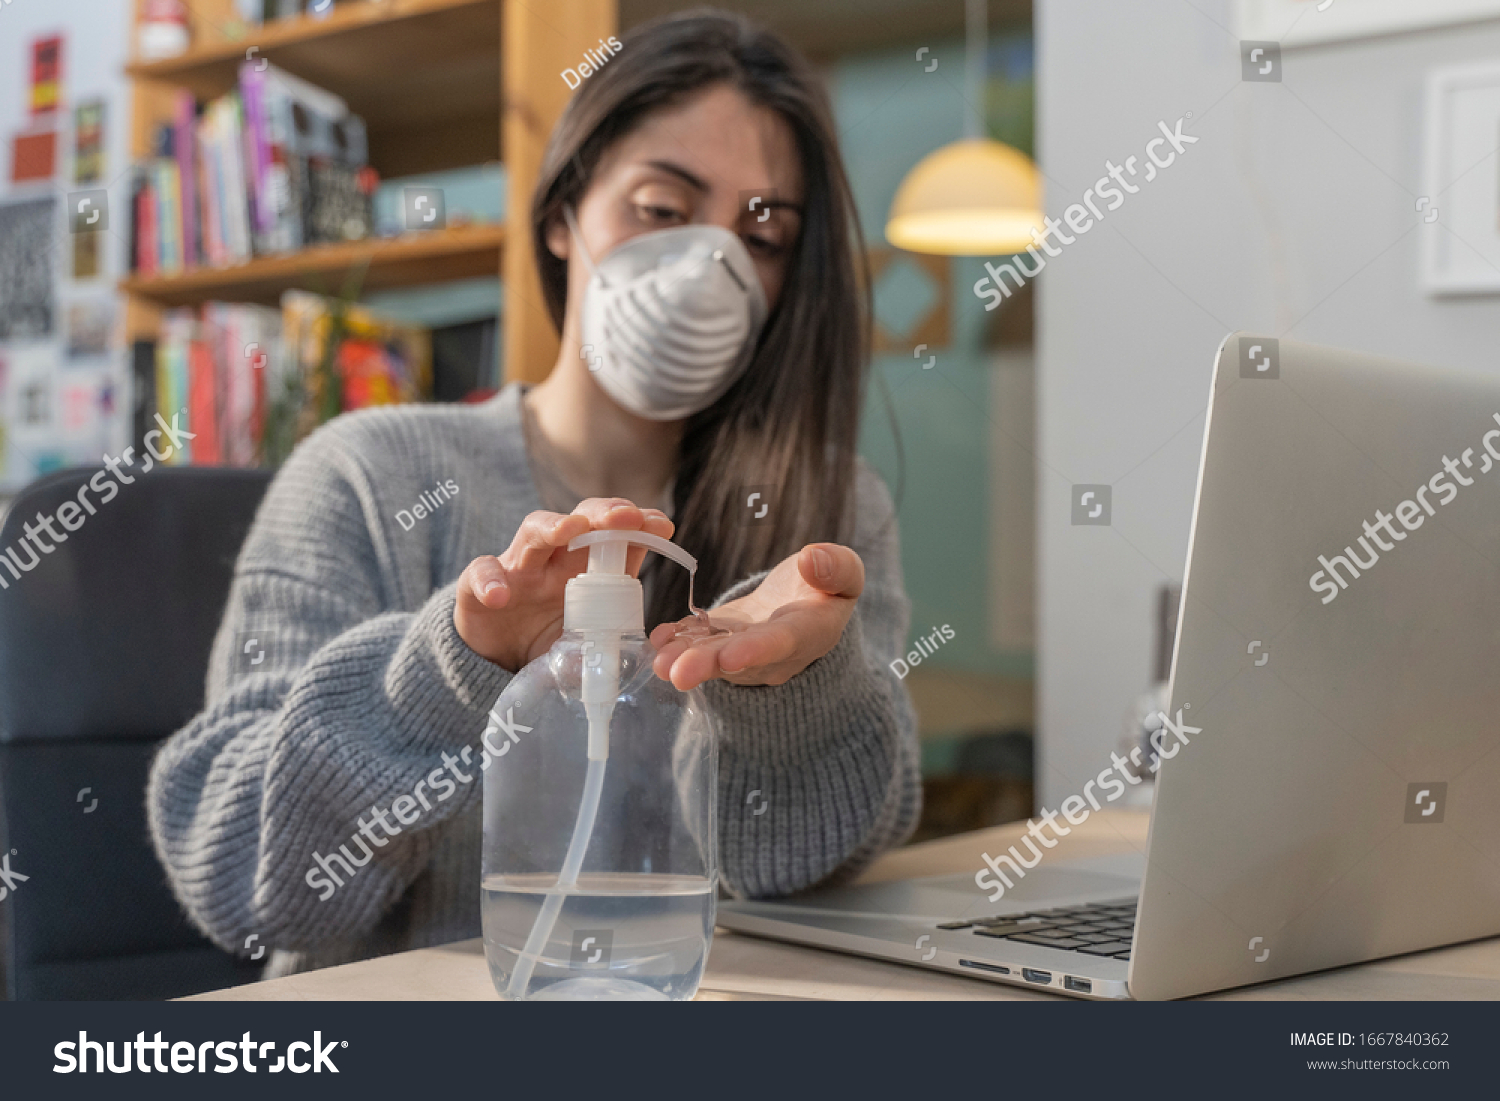 Coronavirus. Business woman working from home wearing protective mask. Business woman in quarantine for coronavirus wearing protective mask. Working from home.  Cleaning her hands with sanitizer gel.  #1667840362